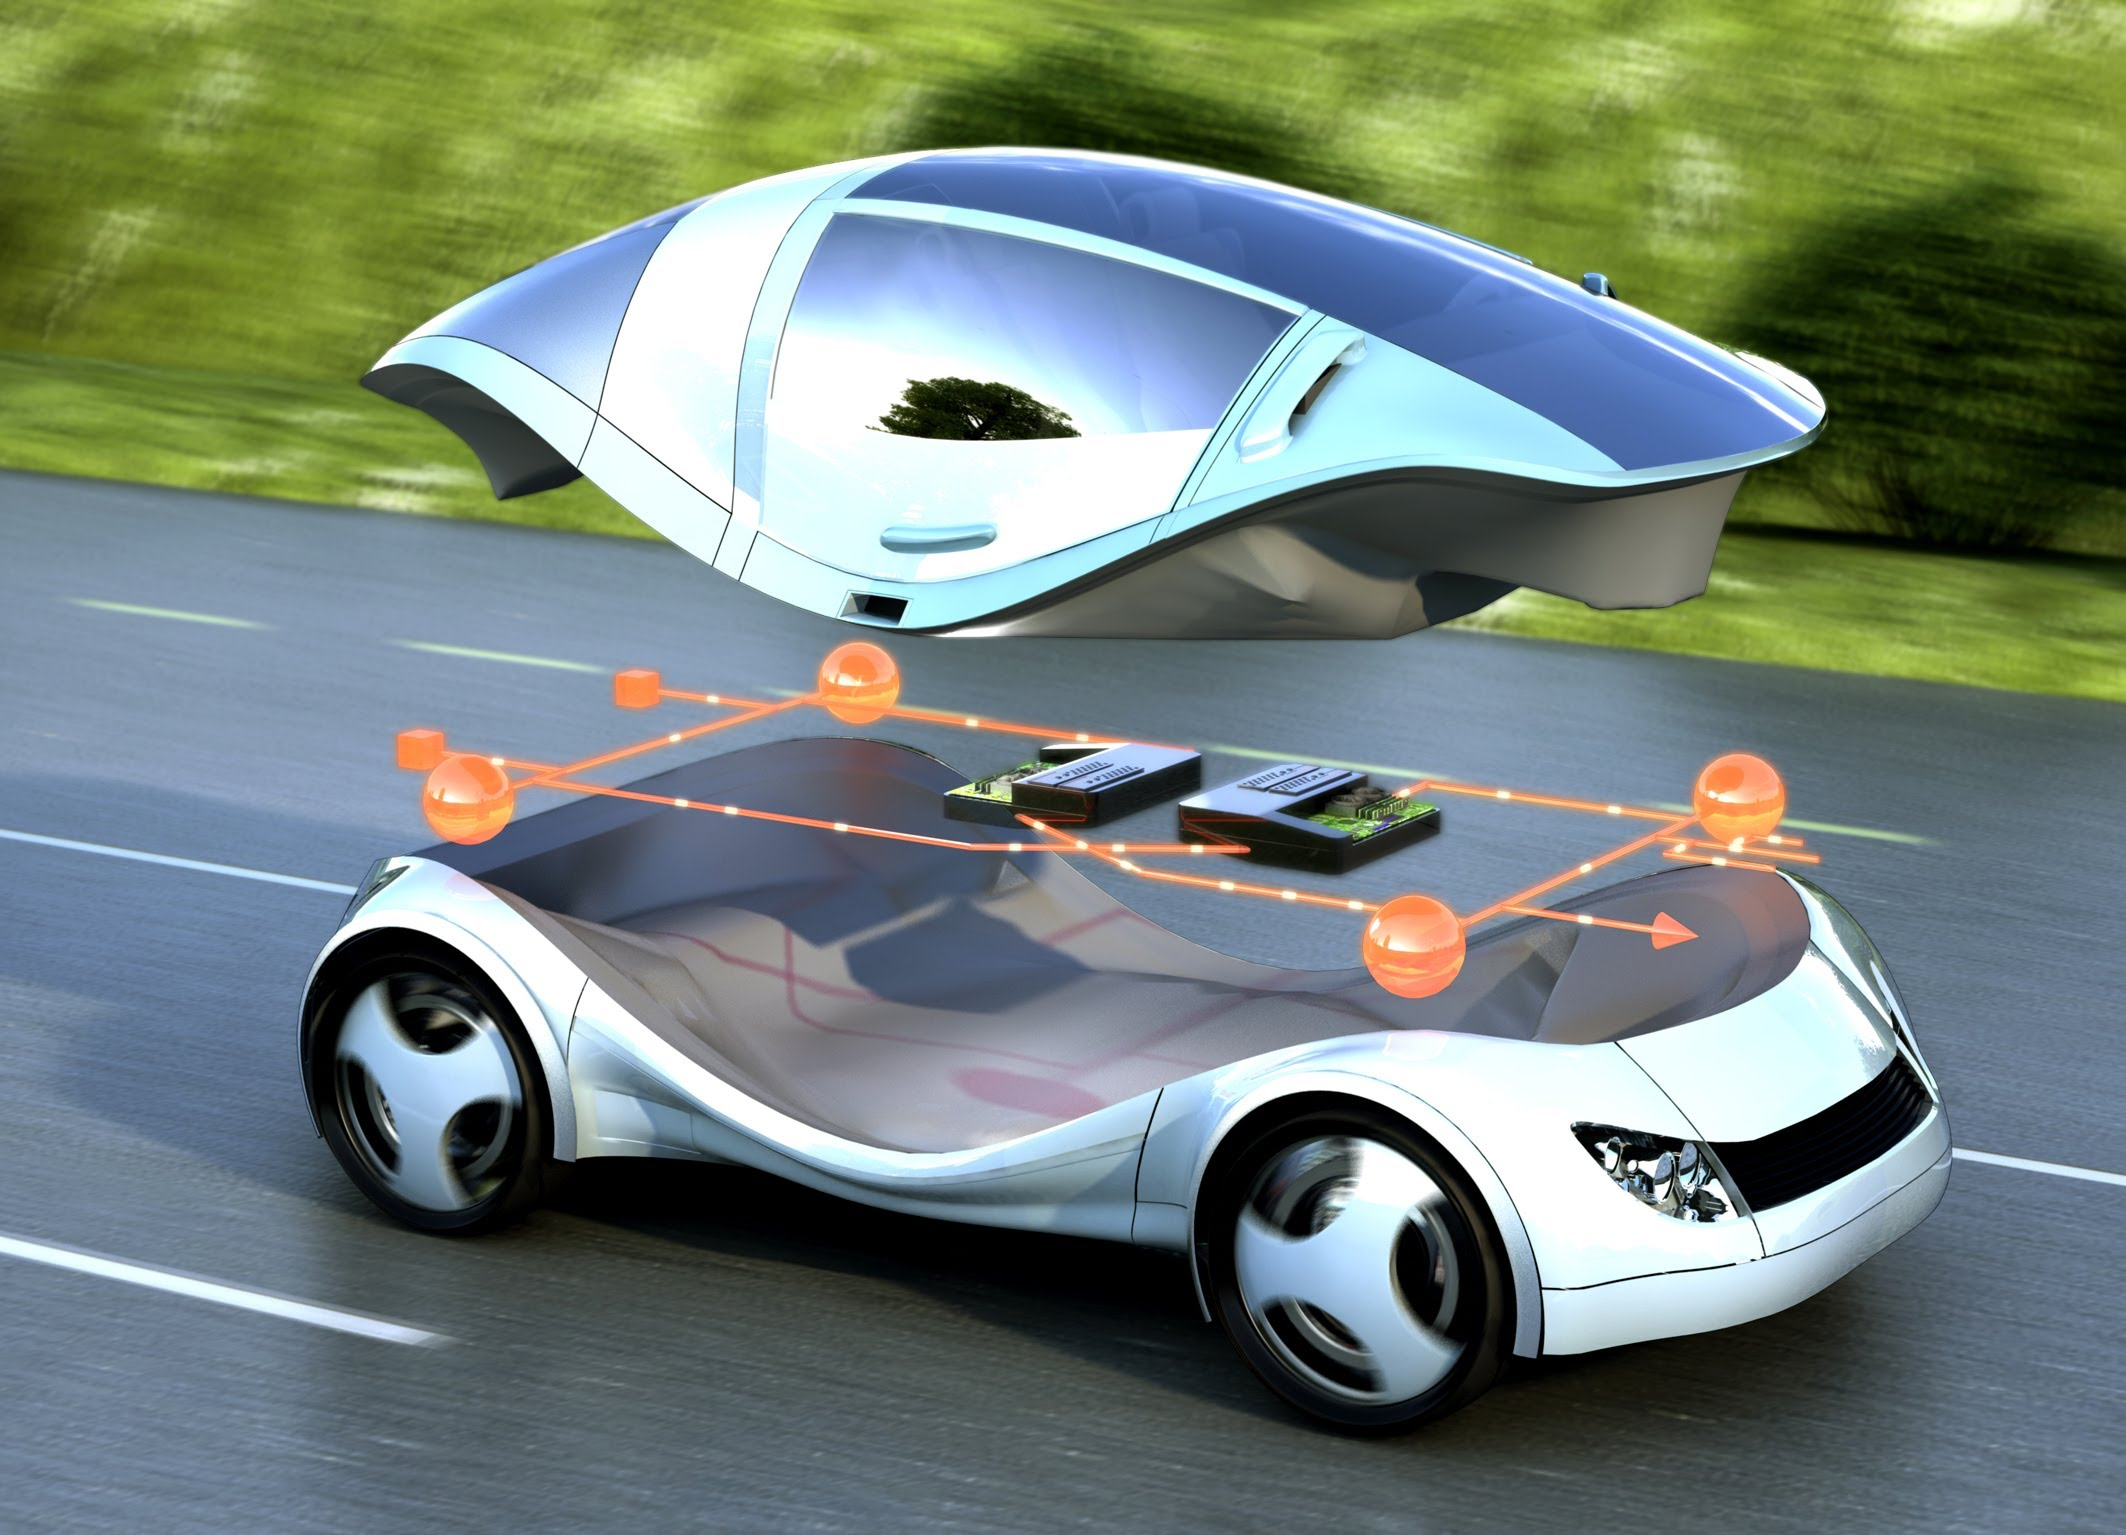 Future Of The Car: The Cars We'll Be Driving In The Future